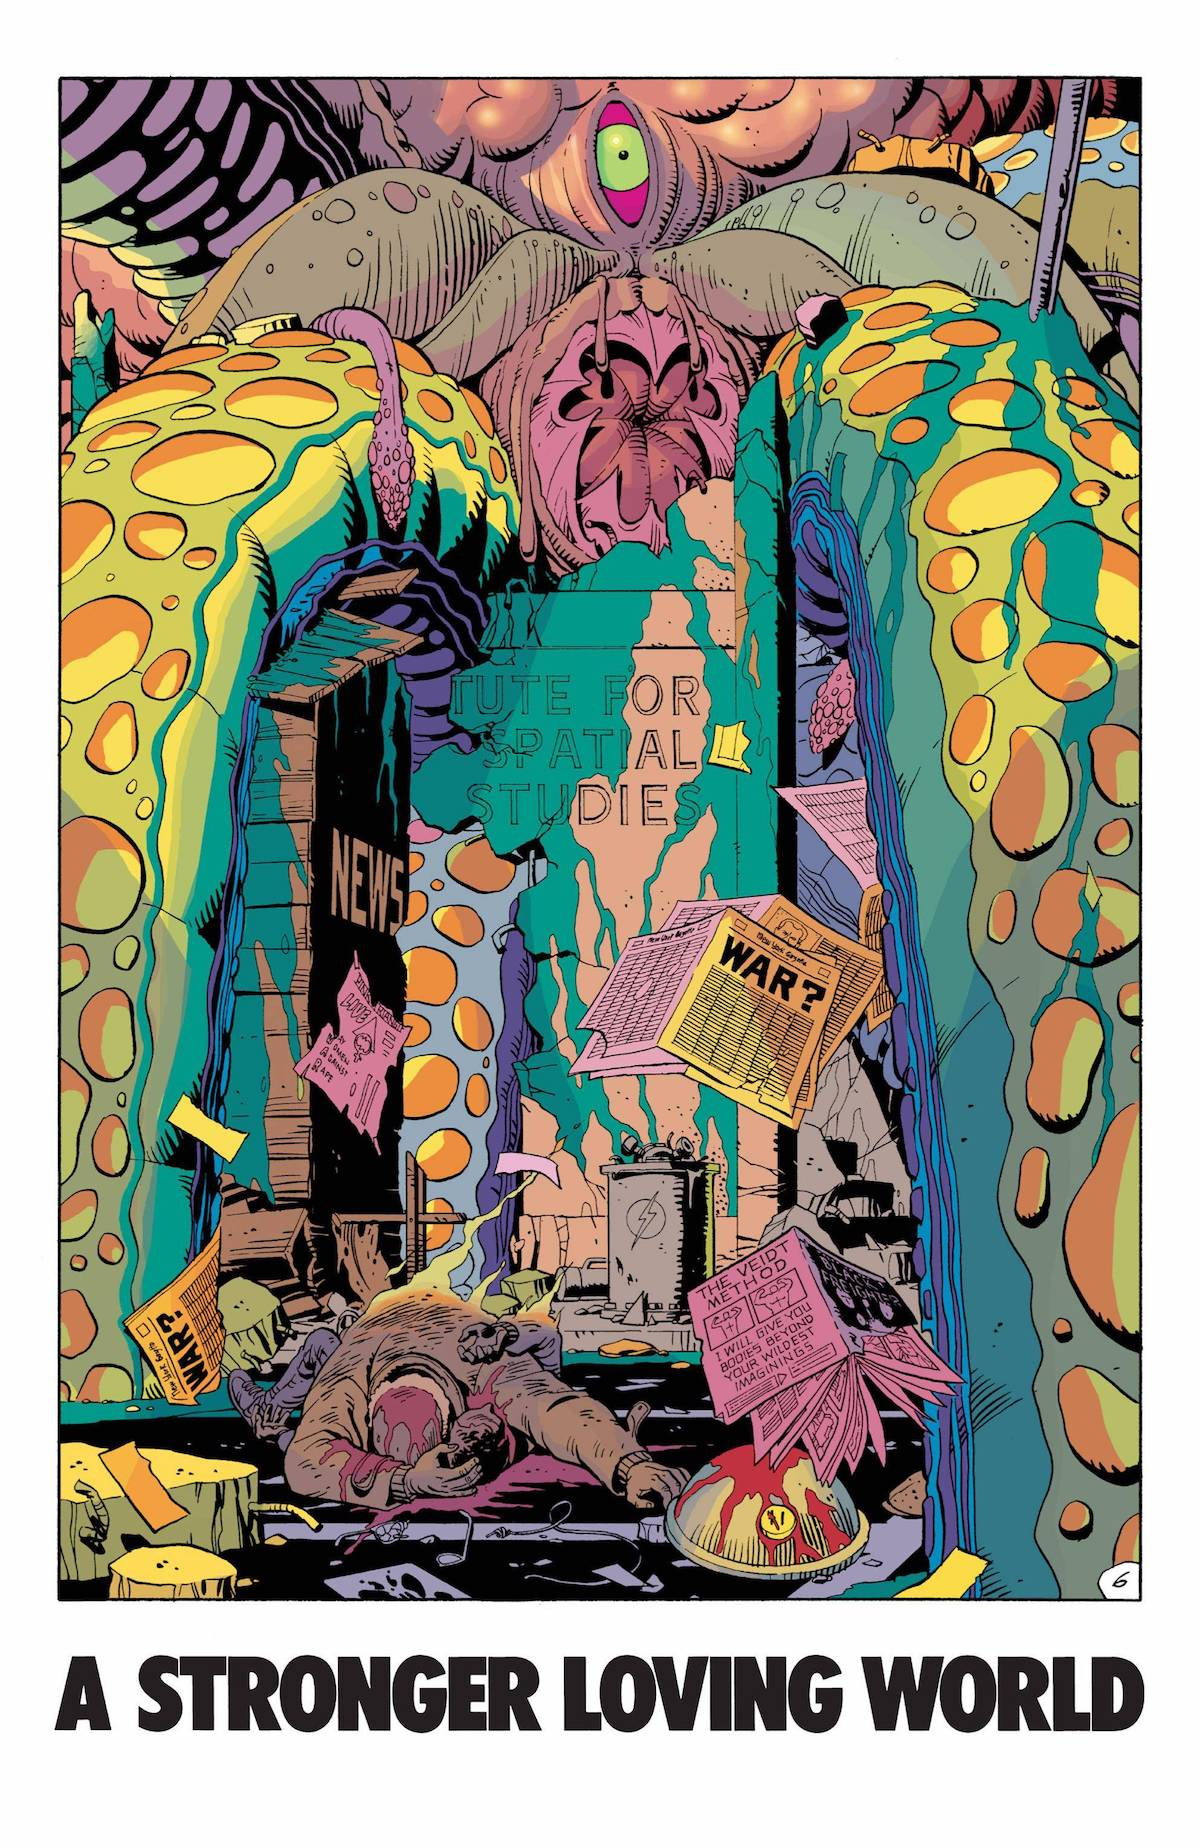 Giant Squid Panel from Watchmen comic